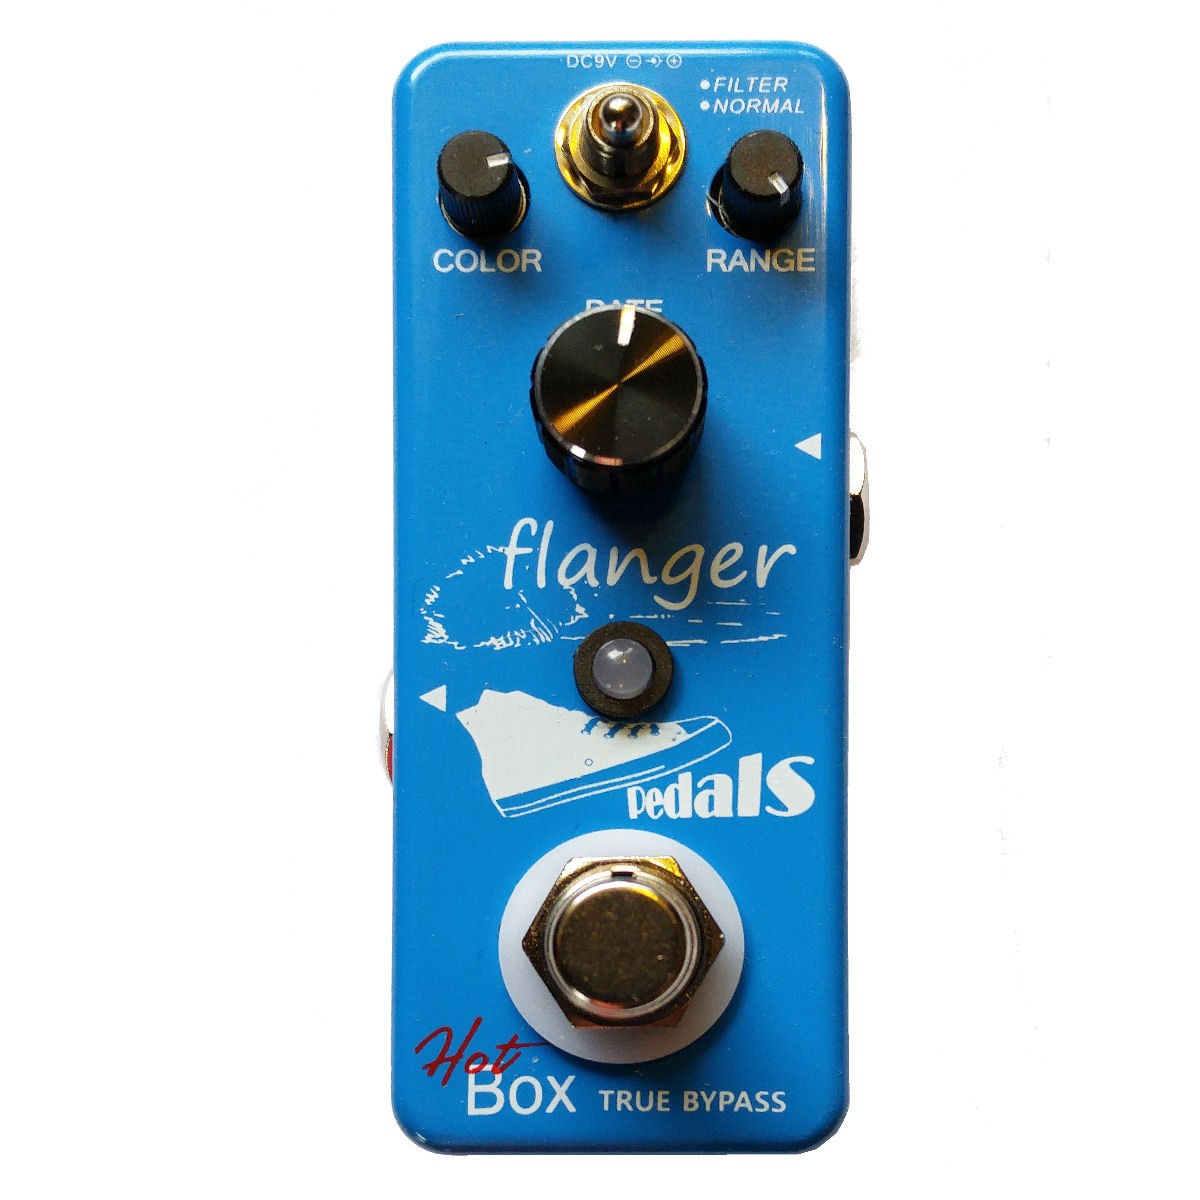 Hot Box Pedals Flanger Attitude Series